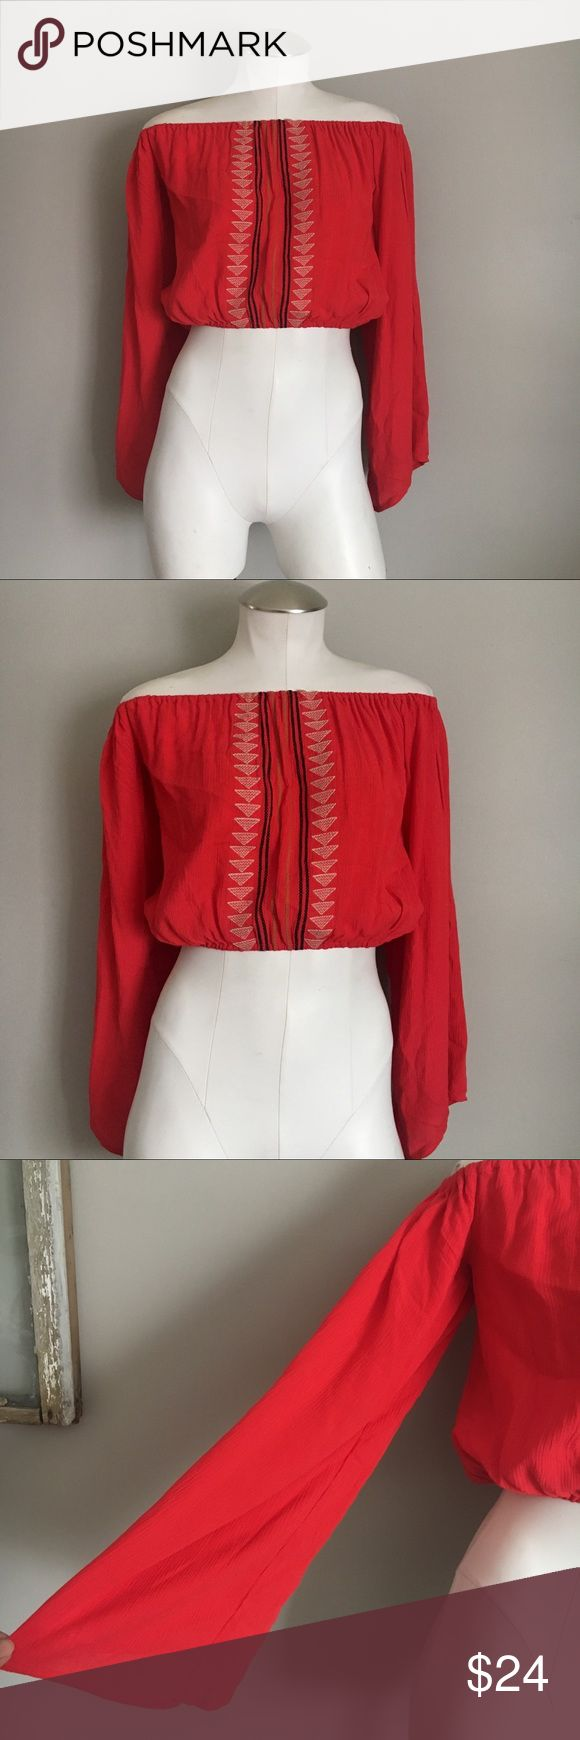 Kendall and Kylie Embroidered Bardot Crop Top Kendall and Kylie Embroidered Bardot Crop Top. Red crop bardot top with embroidery detail. Long sleeve with wide sleeves. 100% rayon. 28 in. bust. 15 in. length.   No trades Kendall & Kylie Tops